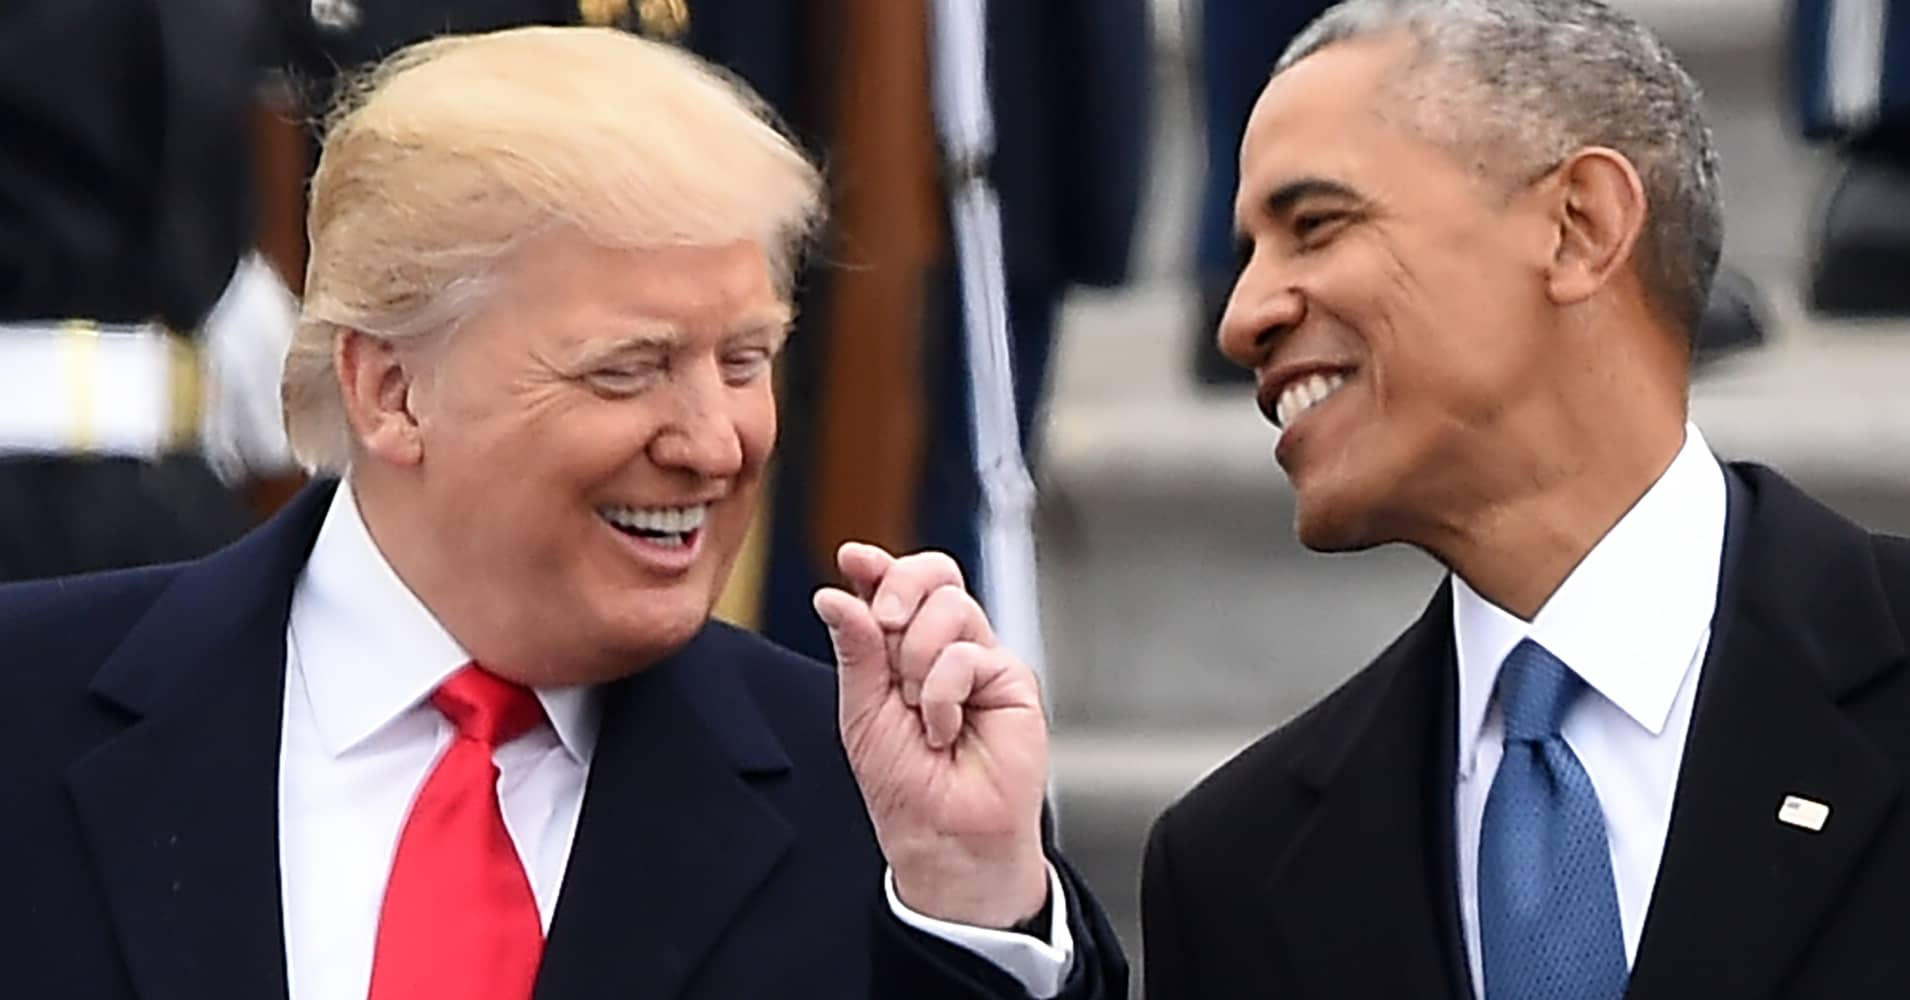 President Donald Trump and former President Barack Obama talk on the East steps of the US Capitol after inauguration ceremonies on January 20, 2017, in Washington, DC.